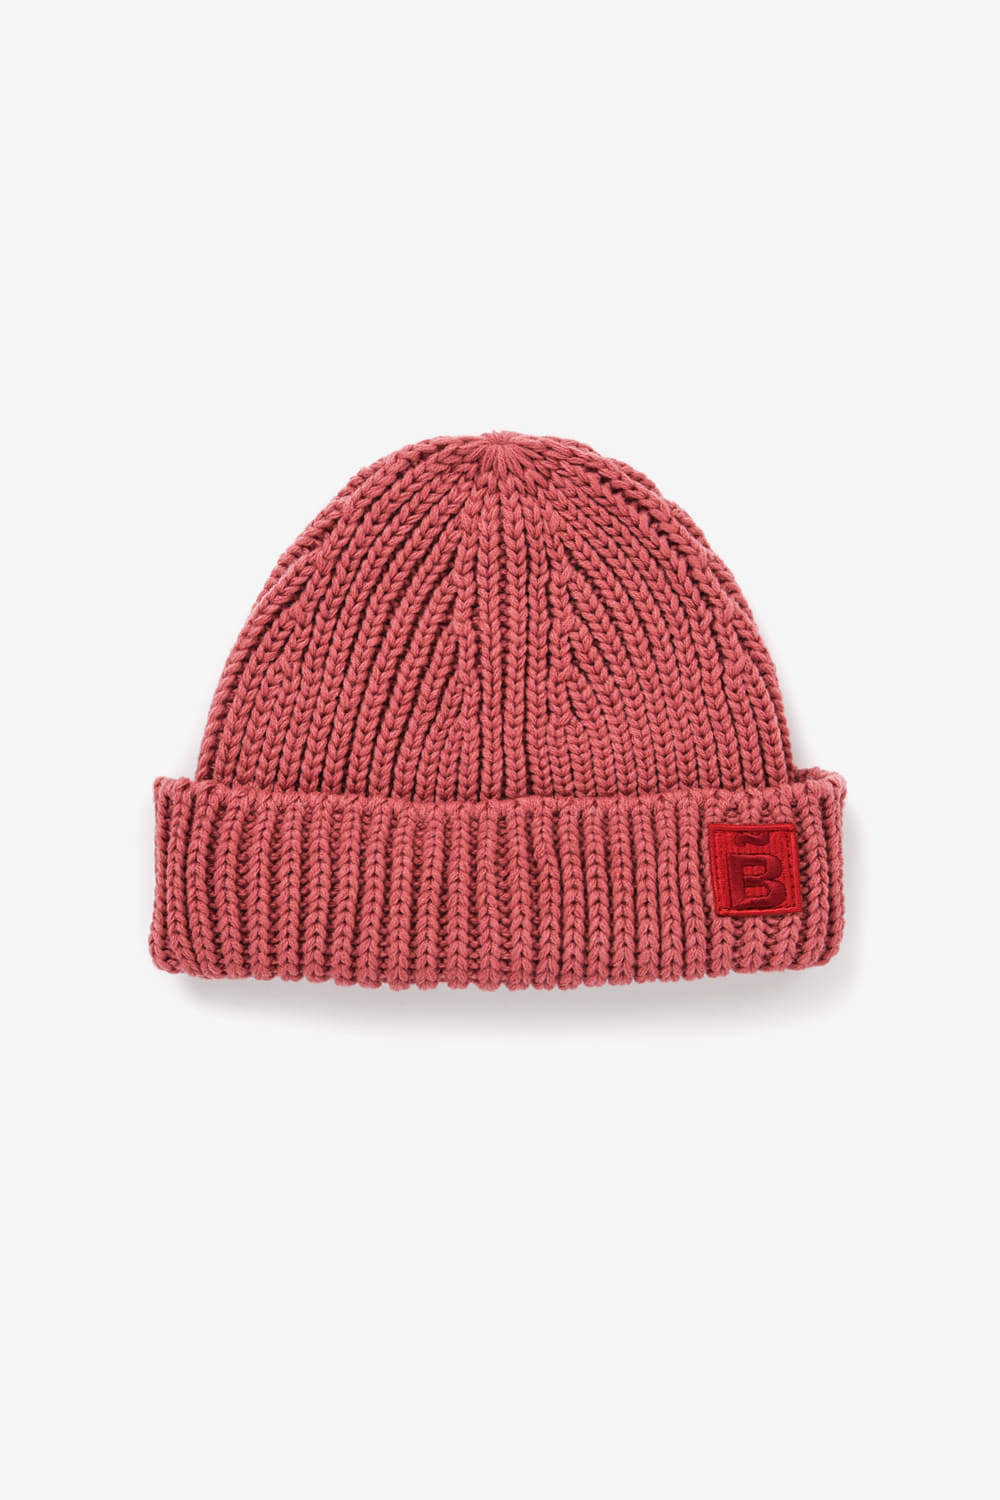 Slow B Short Beanie_Dark red BS9FAC502DR